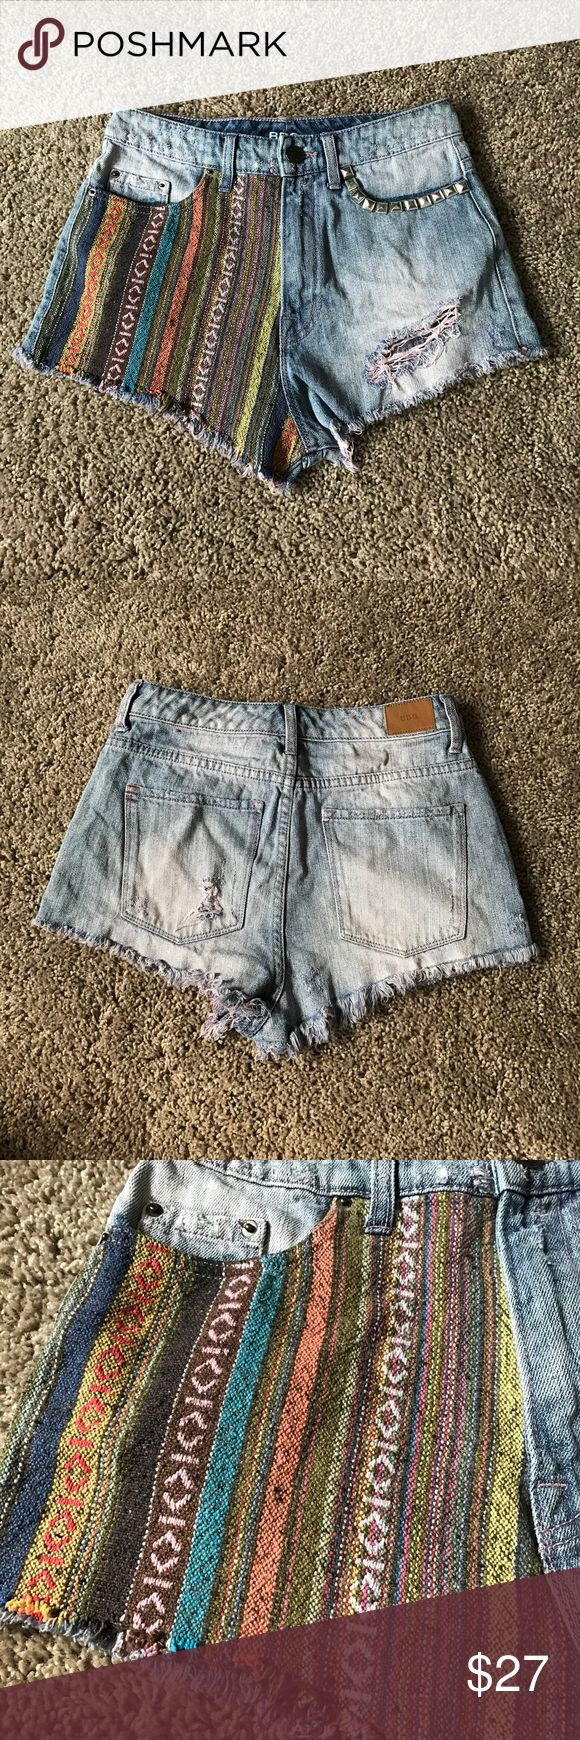 """UO BDG Embellished Distressed Shorts Urban Outfitters brand BDG """"high rise dree cheeky"""" pink tinted distressed denim shorts with studs and a patch of Aztec/tribal woven fabric. Super cute, in great condition. Size 26  100% cotton  Machine wash cold, line dry Urban Outfitters Shorts Jean Shorts"""